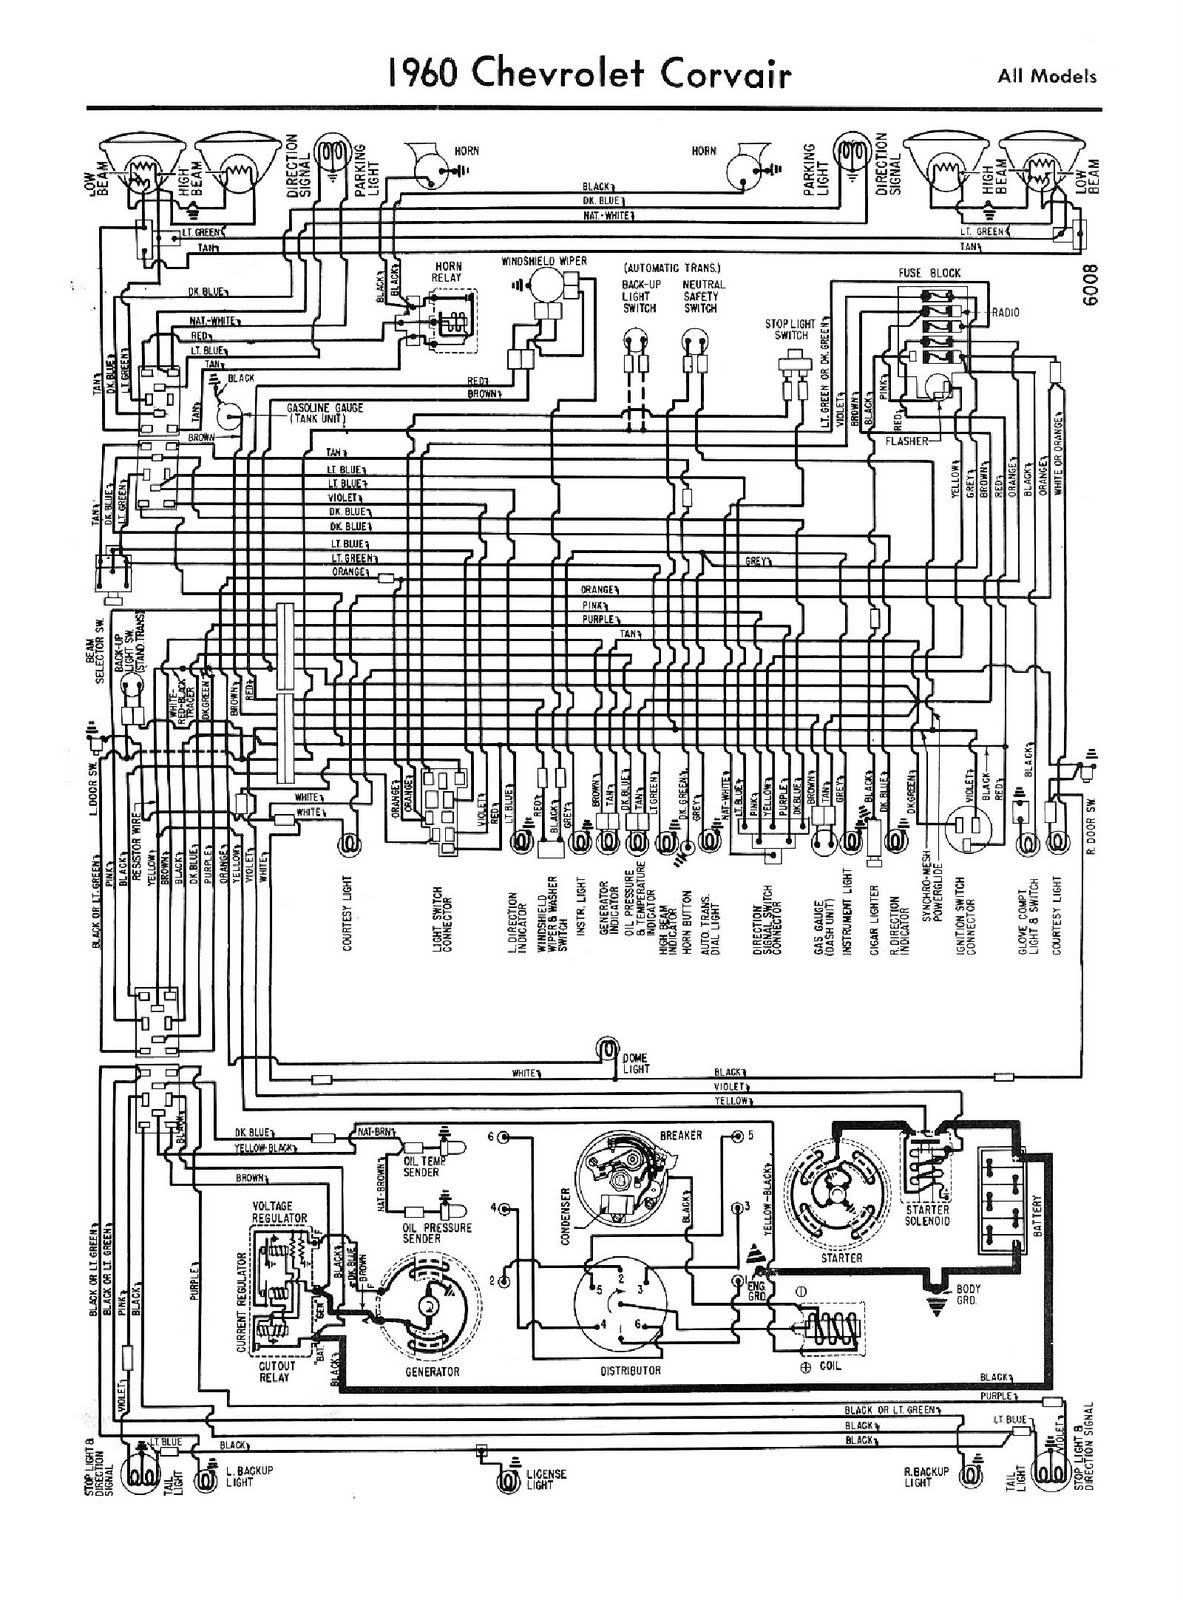 60 Chevy Wiper Wiring Diagram Electrical Diagrams 2 5 Motor Schematic Speed